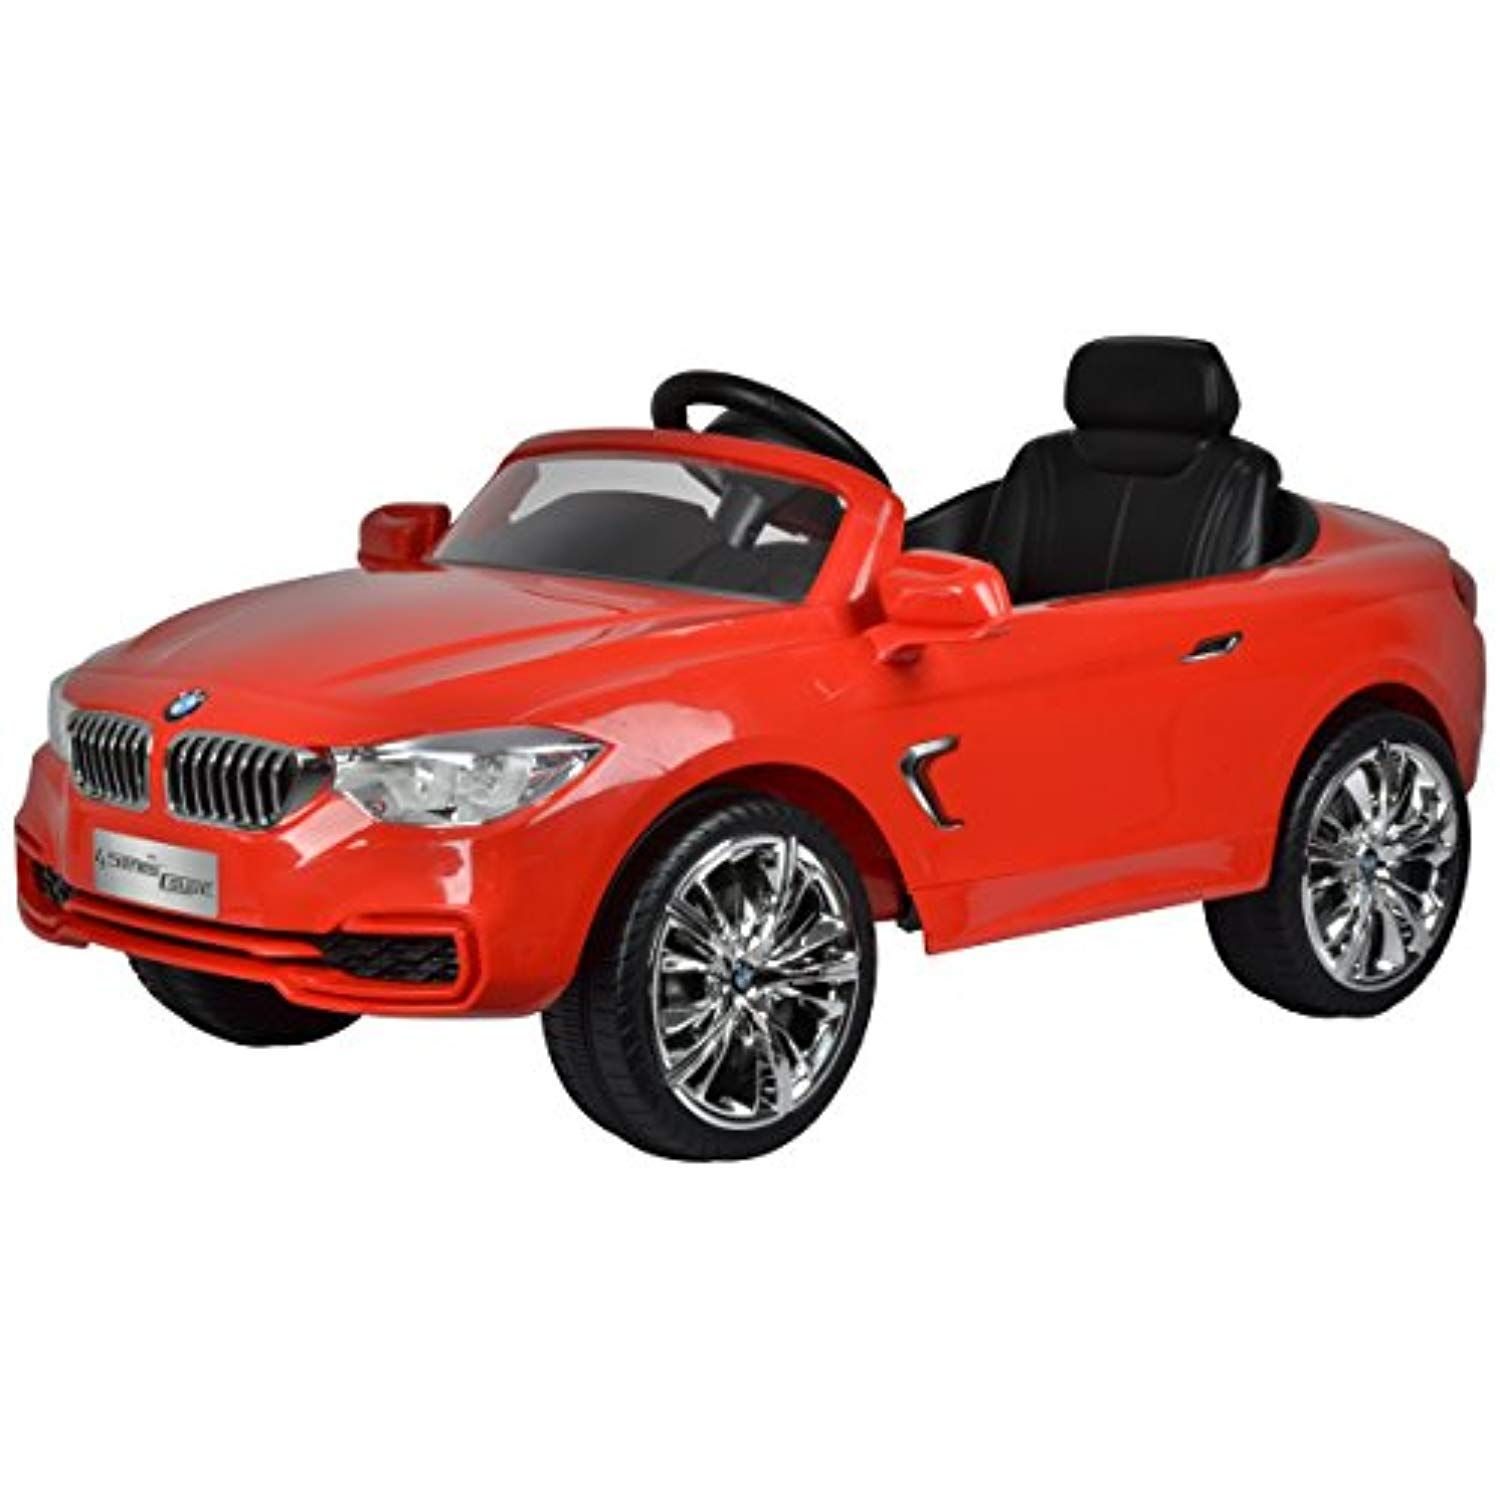 Best ride on cars bmw 4 series ride on 12v red read